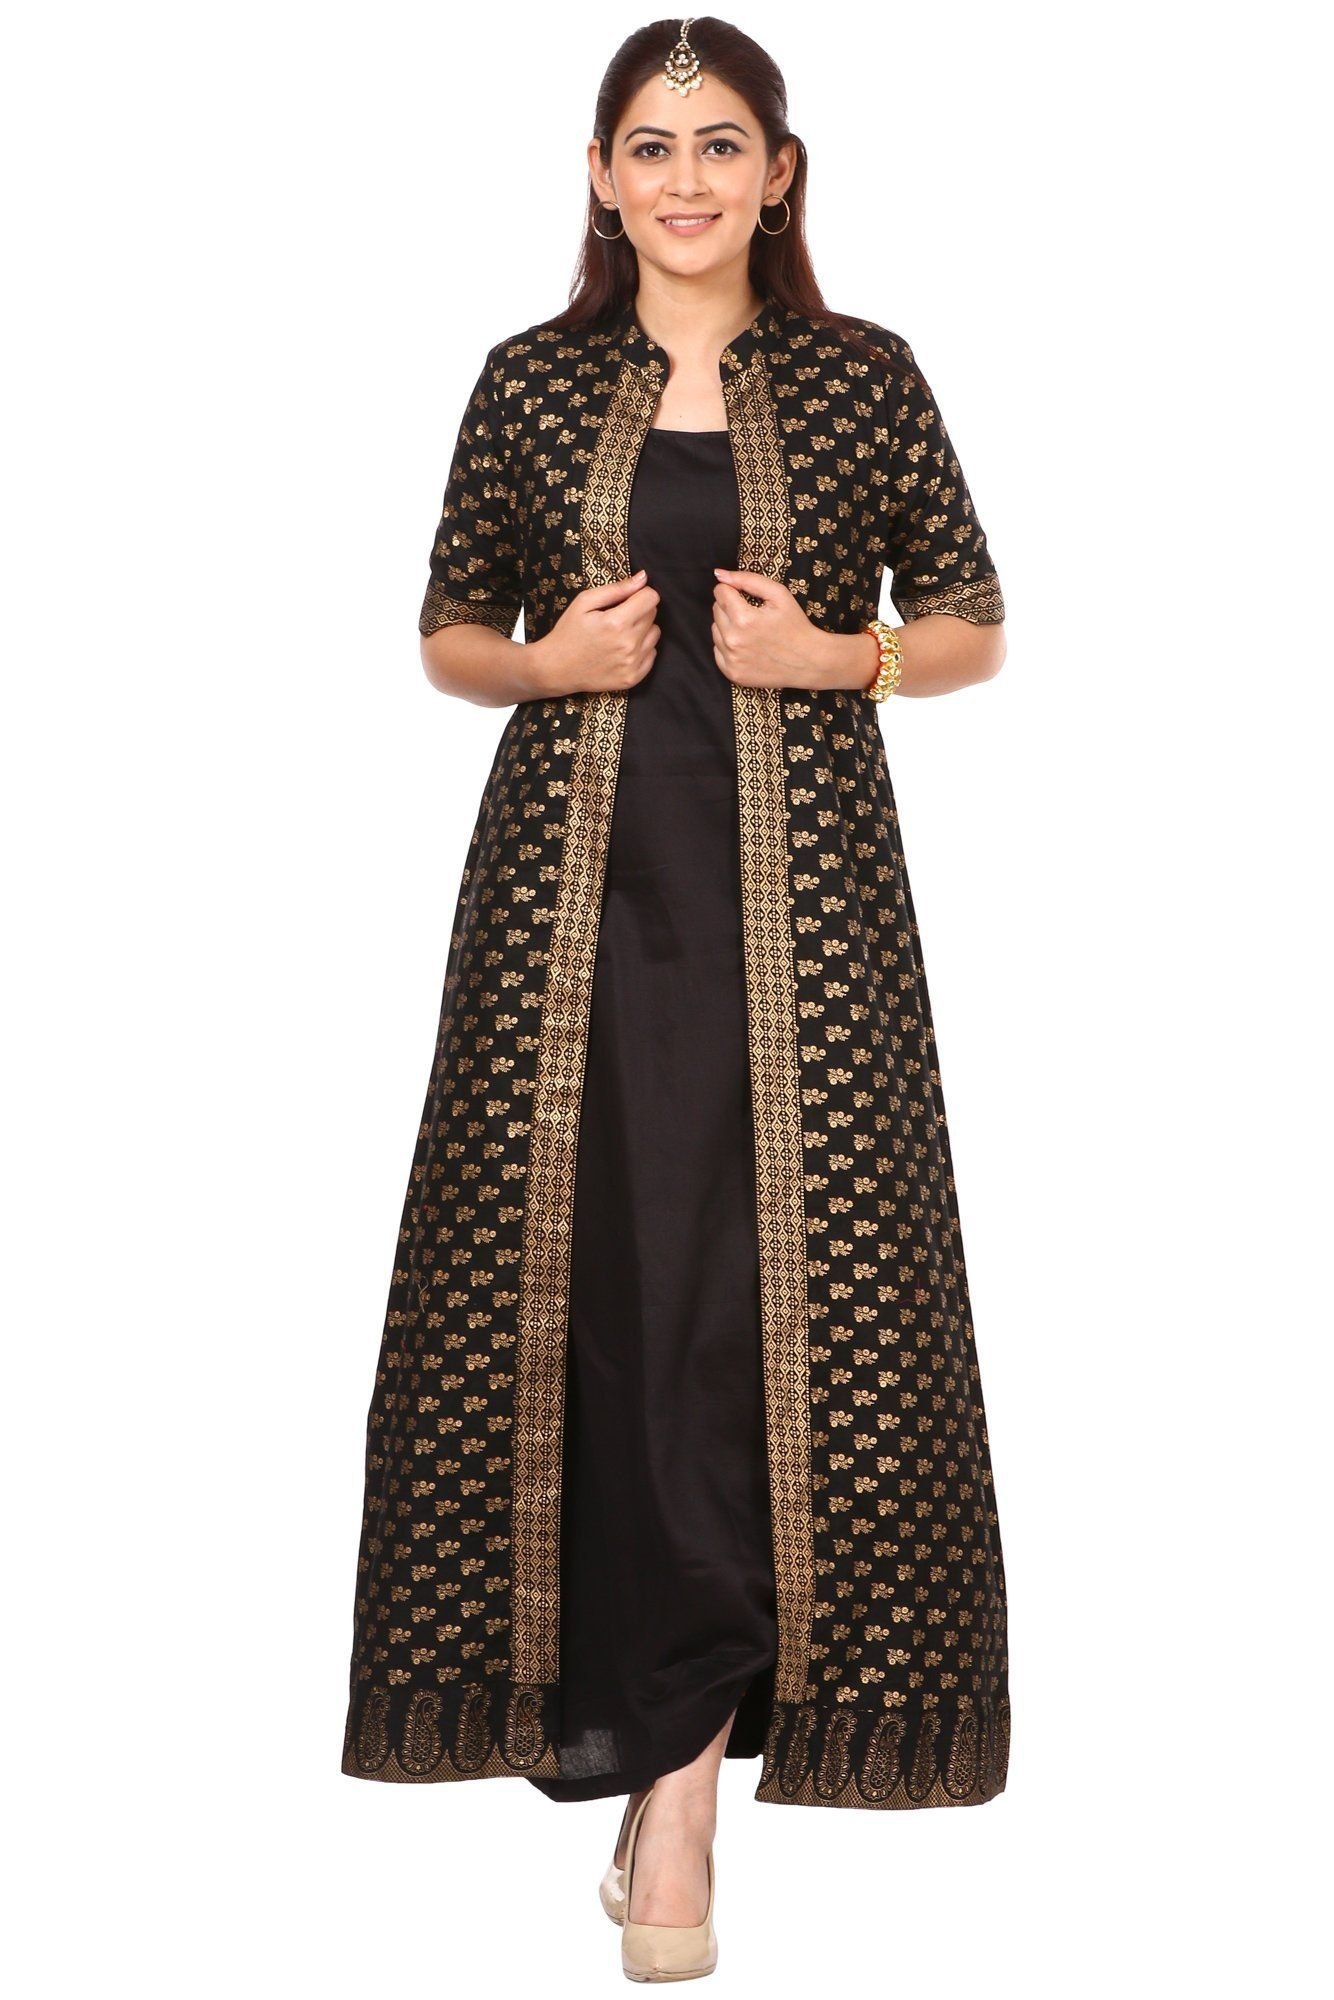 f59b155557 anokherang | Black and Gold Long Jacket Kurta Dress | Ethnic Fashion in all  sizes from XS to Plus Sizes